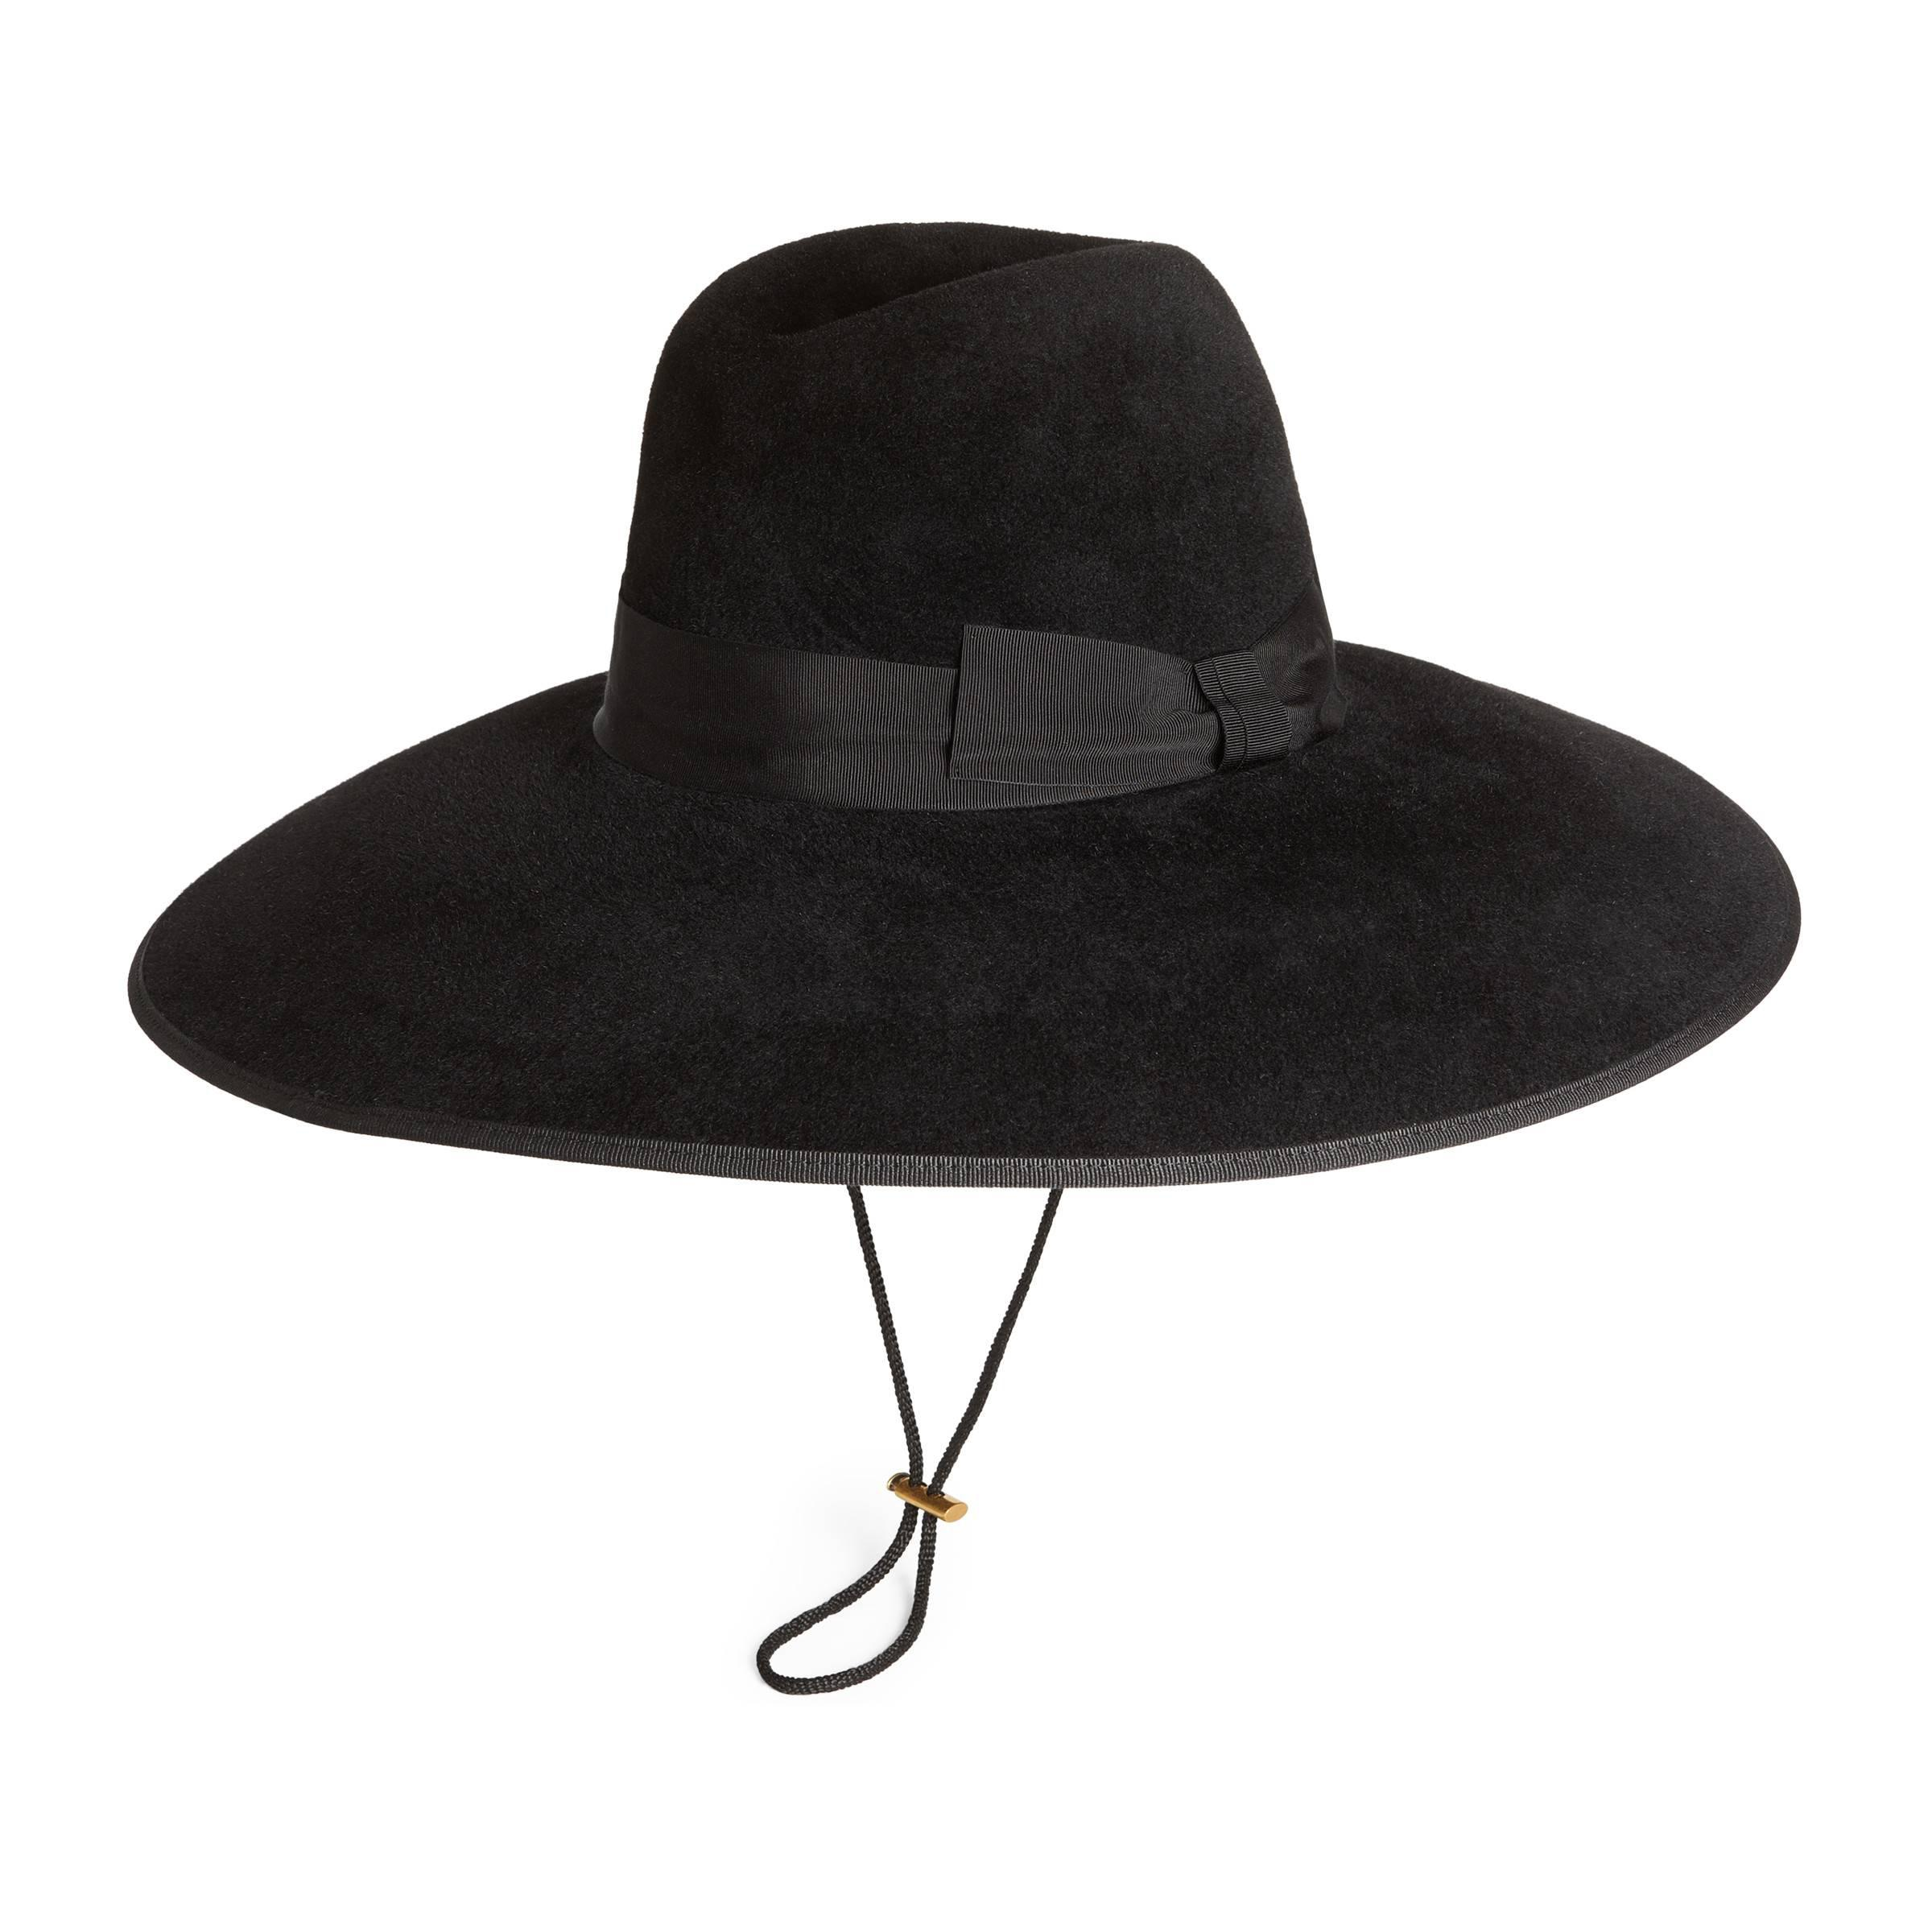 a8092f6ea Gucci Felt Wide Brim Hat in Black for Men - Lyst